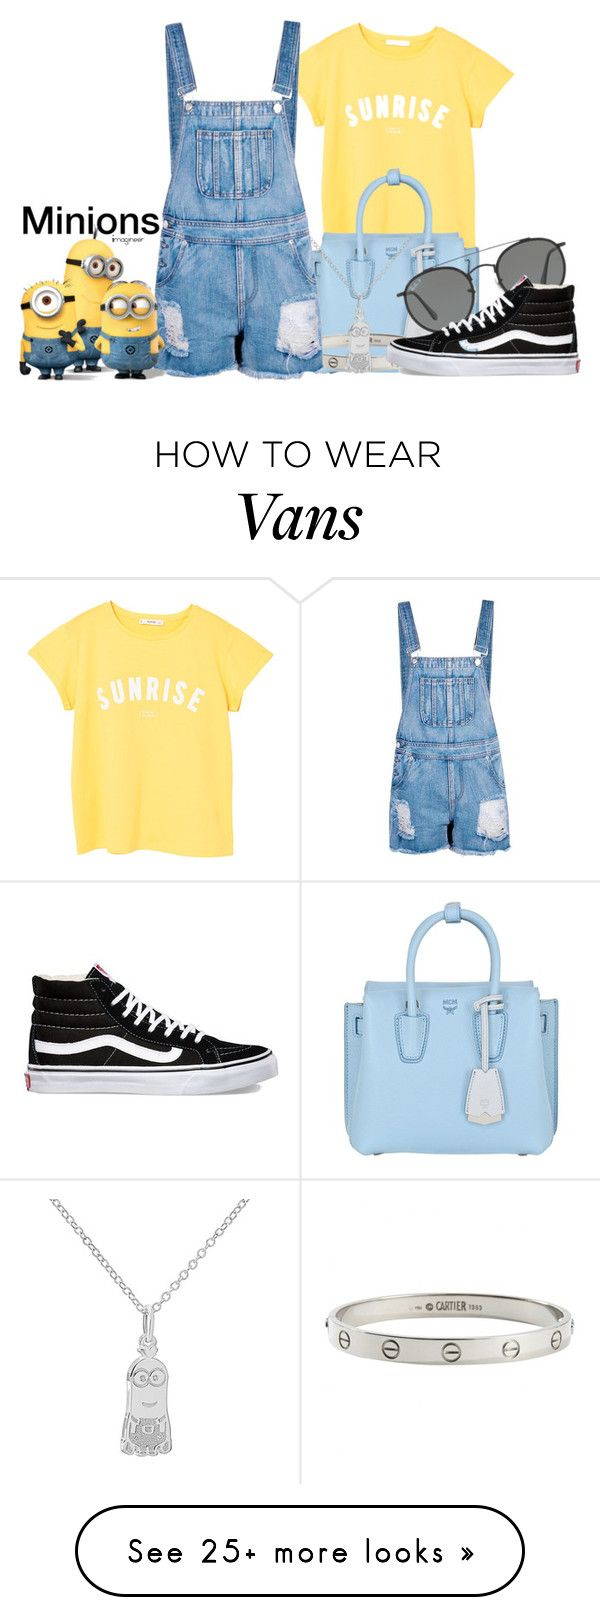 """Minions (Despicable Me)"" by claucrasoda on Polyvore featuring MANGO, MCM, Cartier, Boohoo, Ray-Ban, Vans and slogantshirts"